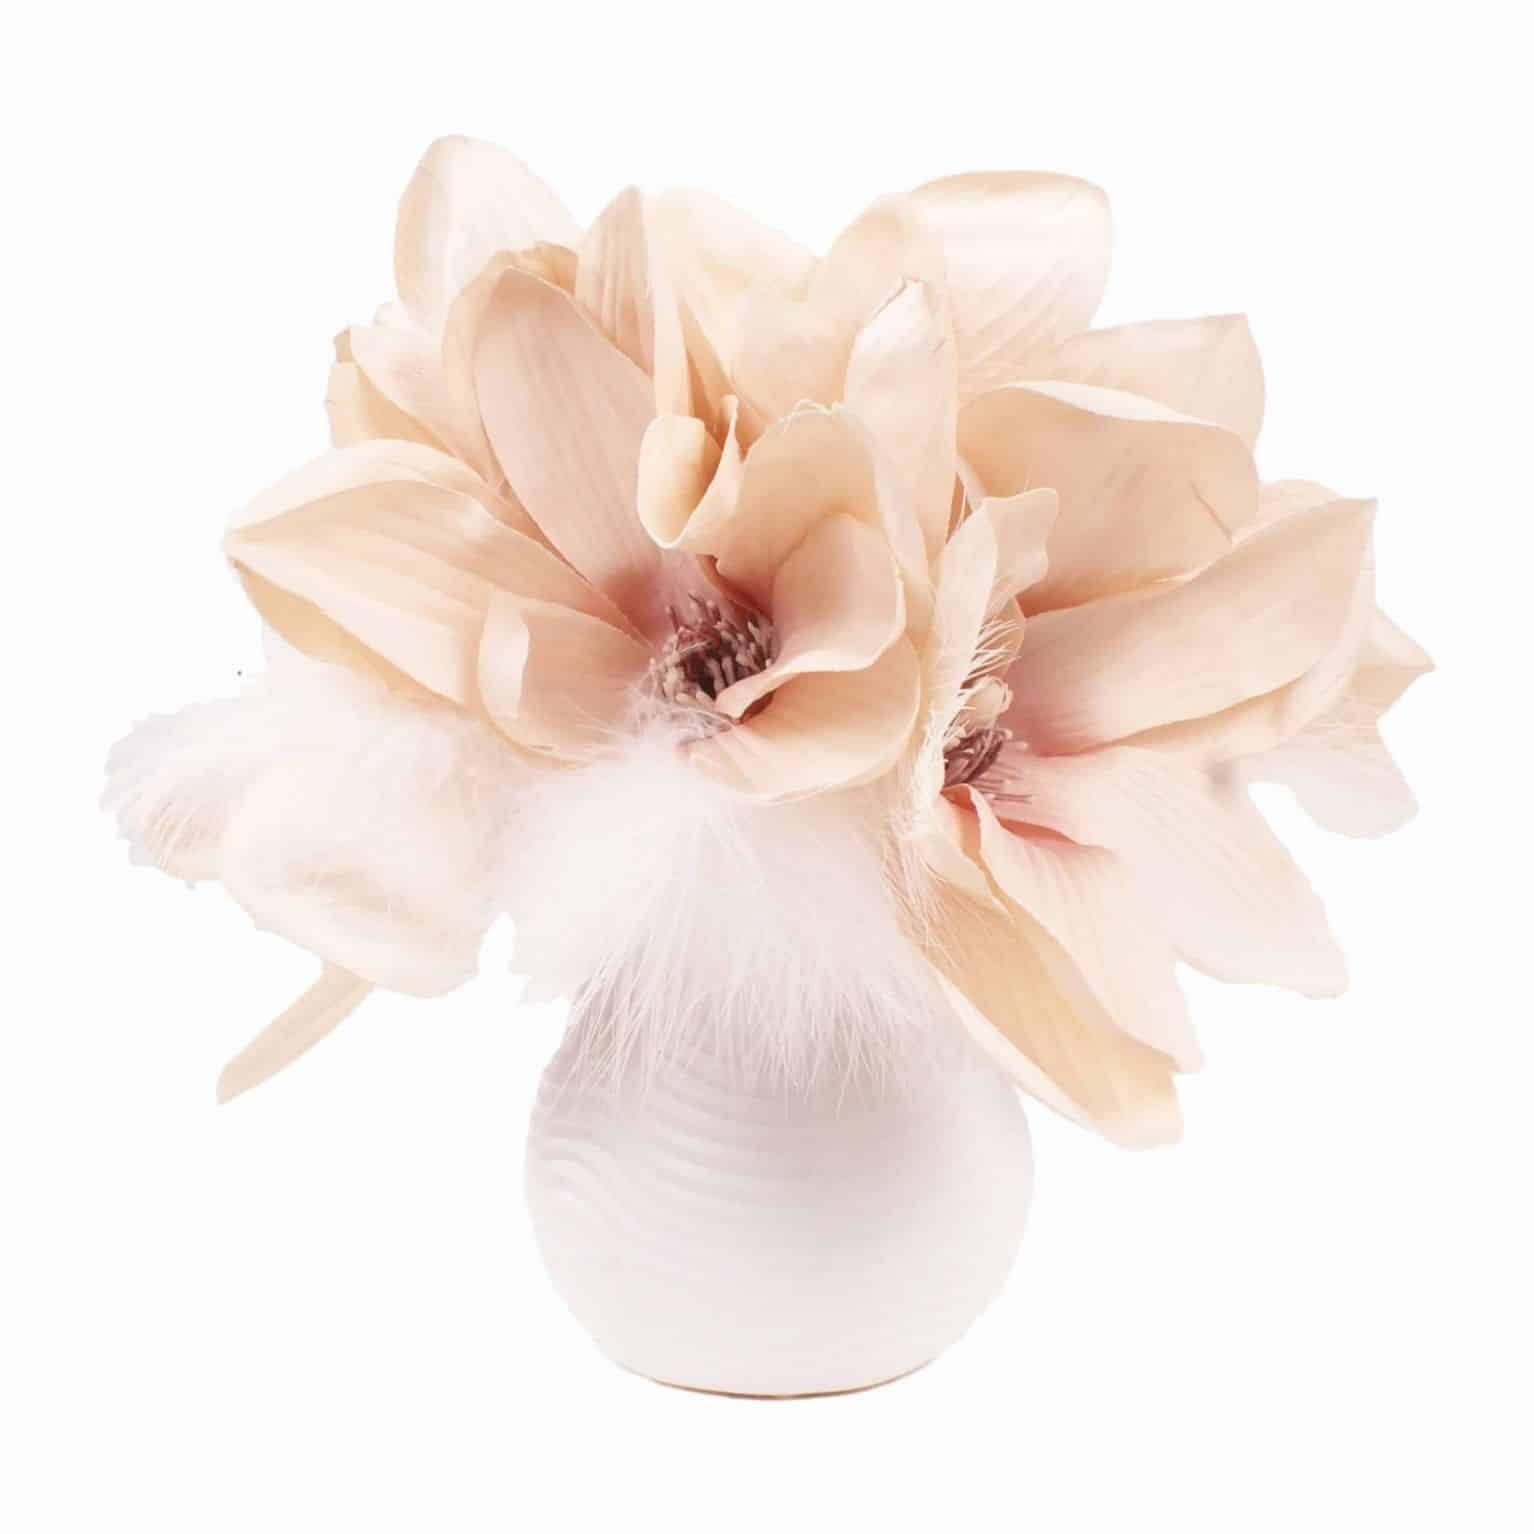 Shop for simplicity and splendour of silk flower Champagne magnolia heads with detailed lifelike pollen and a touch of artificial feathers.